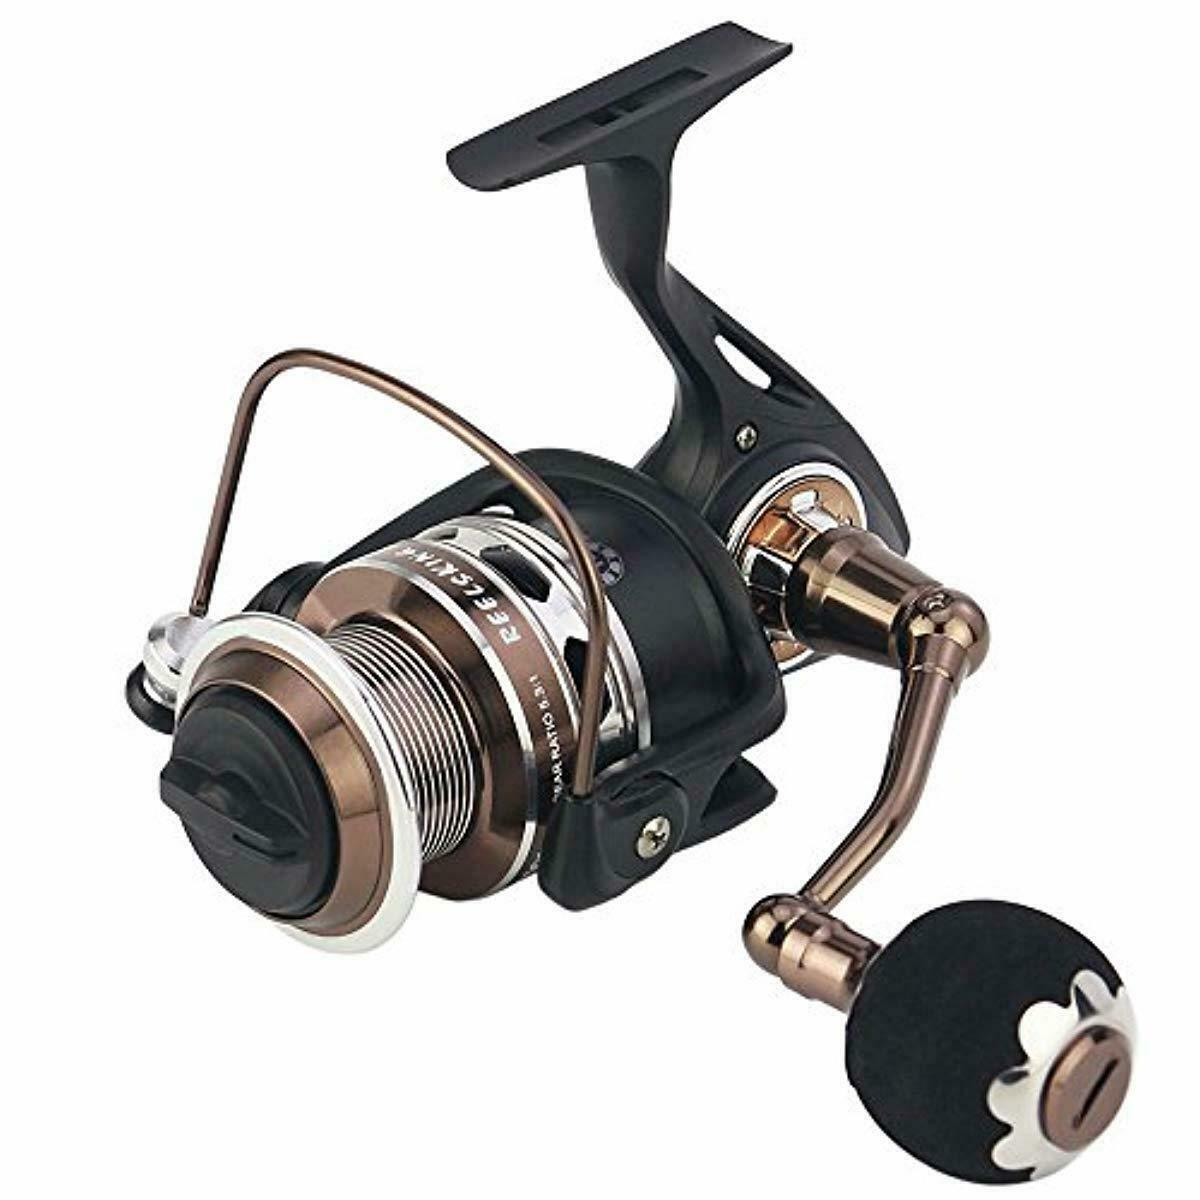 Reelsking Spinning Reel, All Metal Frame, Super Smooth, Max  50 lbs Drag, 13+1 Co  zero profit